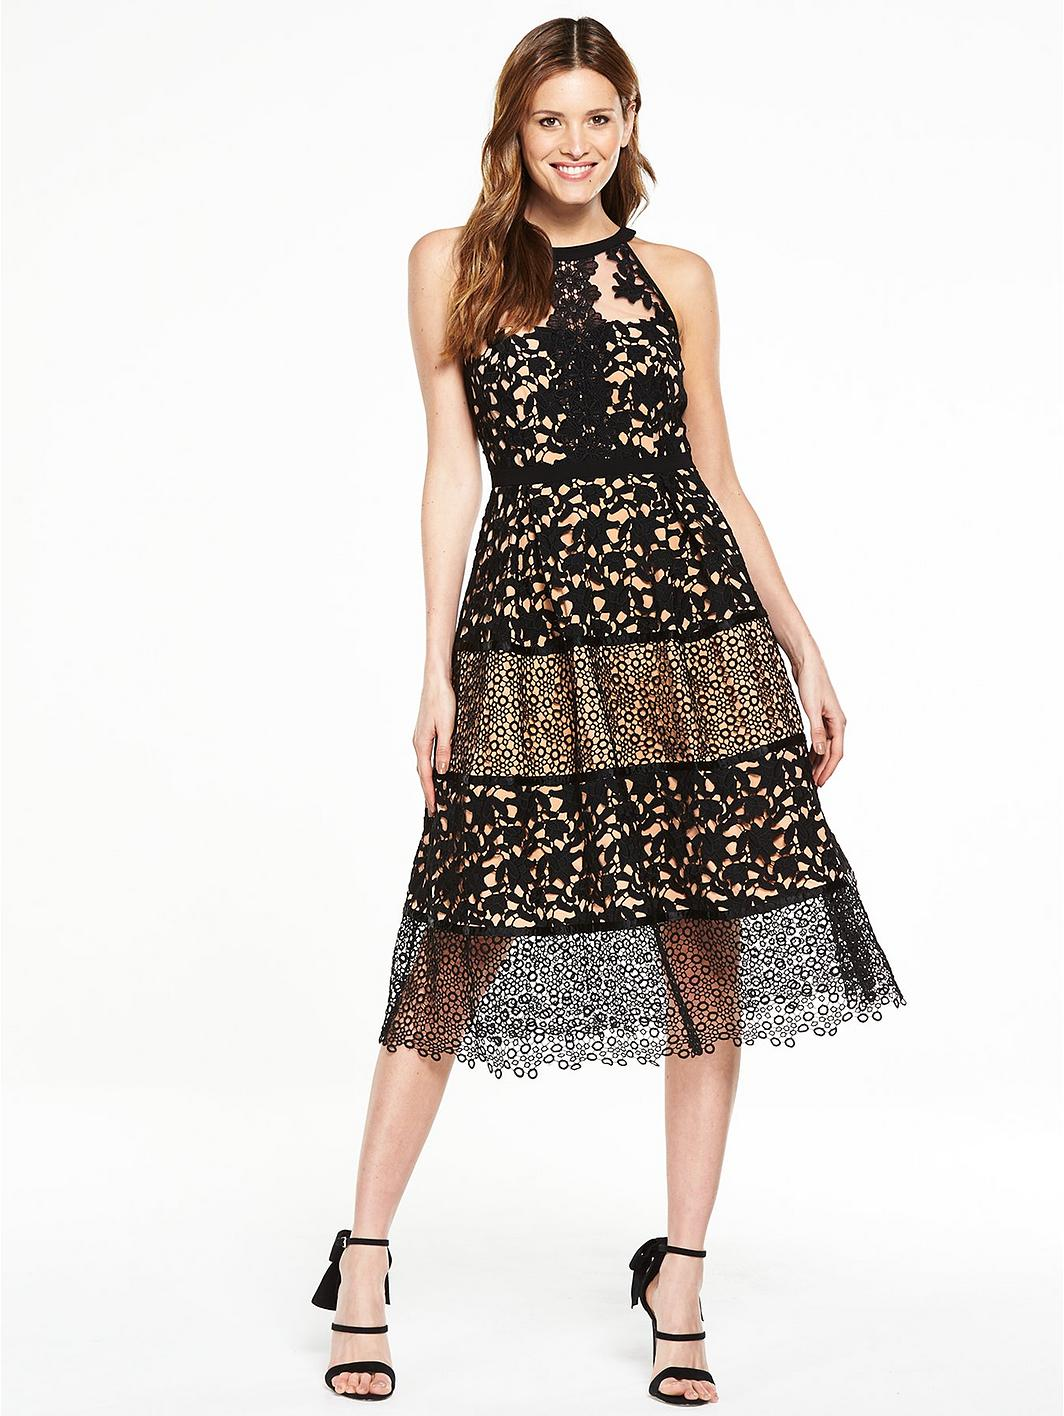 Black lace dress littlewoods black dress pants littlewoods bridesmaid dresses image collections braidsmaid images dress tail lace v ombrellifo Image collections